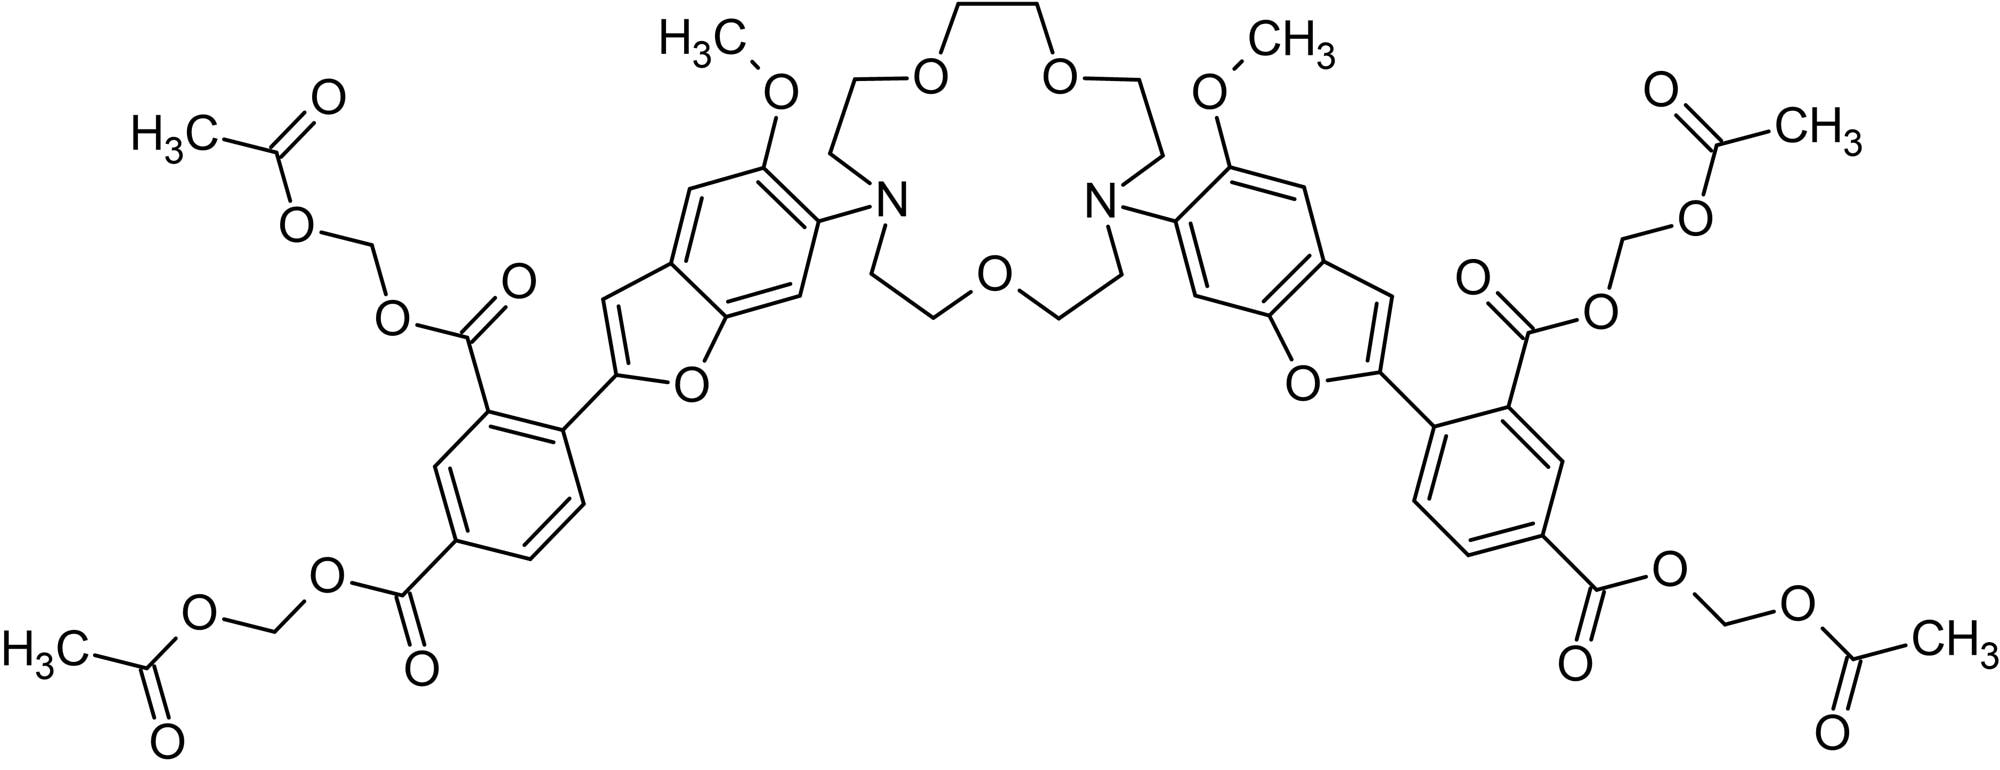 Chemical Structure - SBFI AM, fluorescent Na<sup>+</sup> indicator (ab142800)